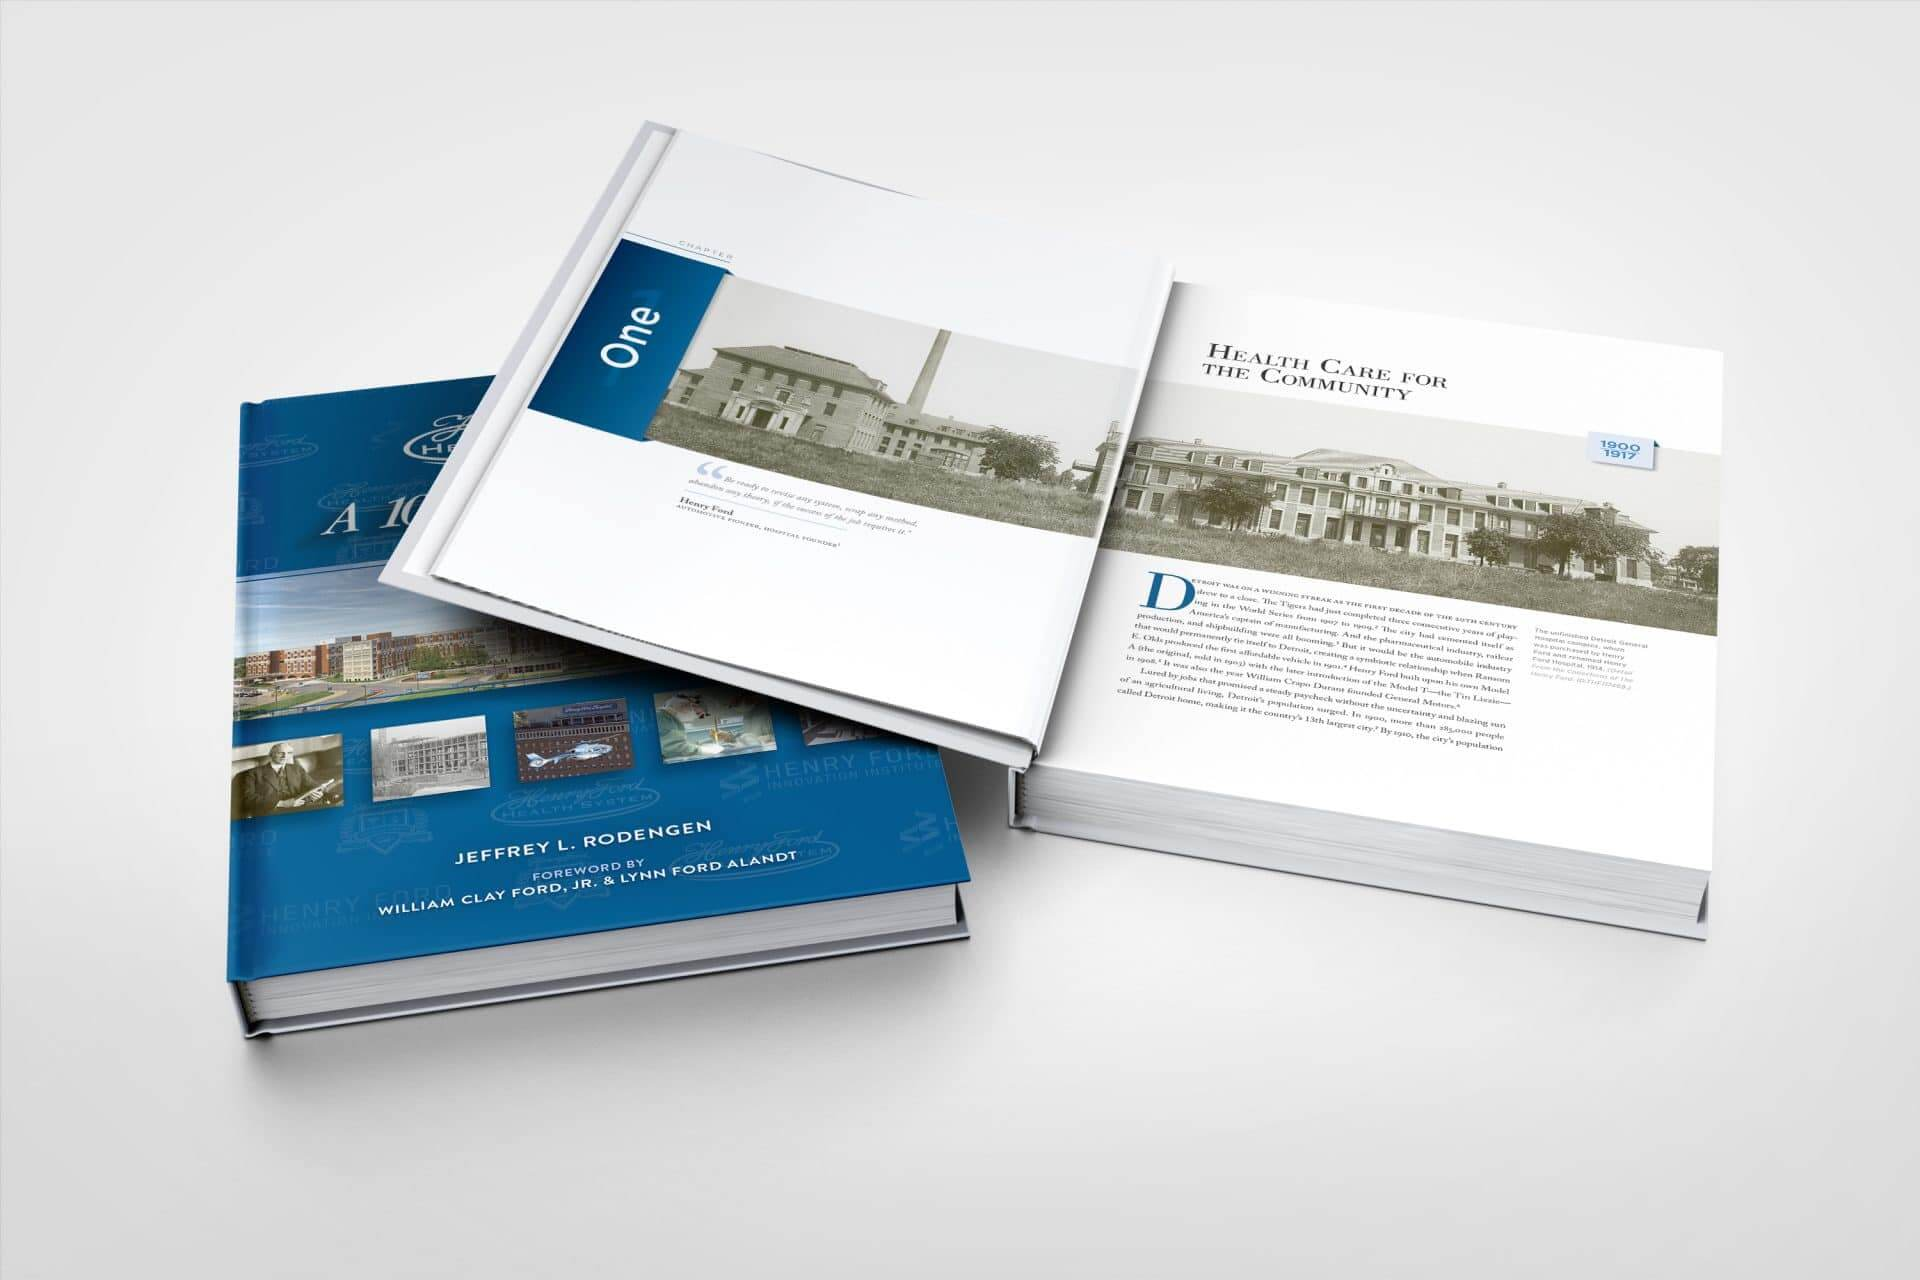 corporate history and anniversary book